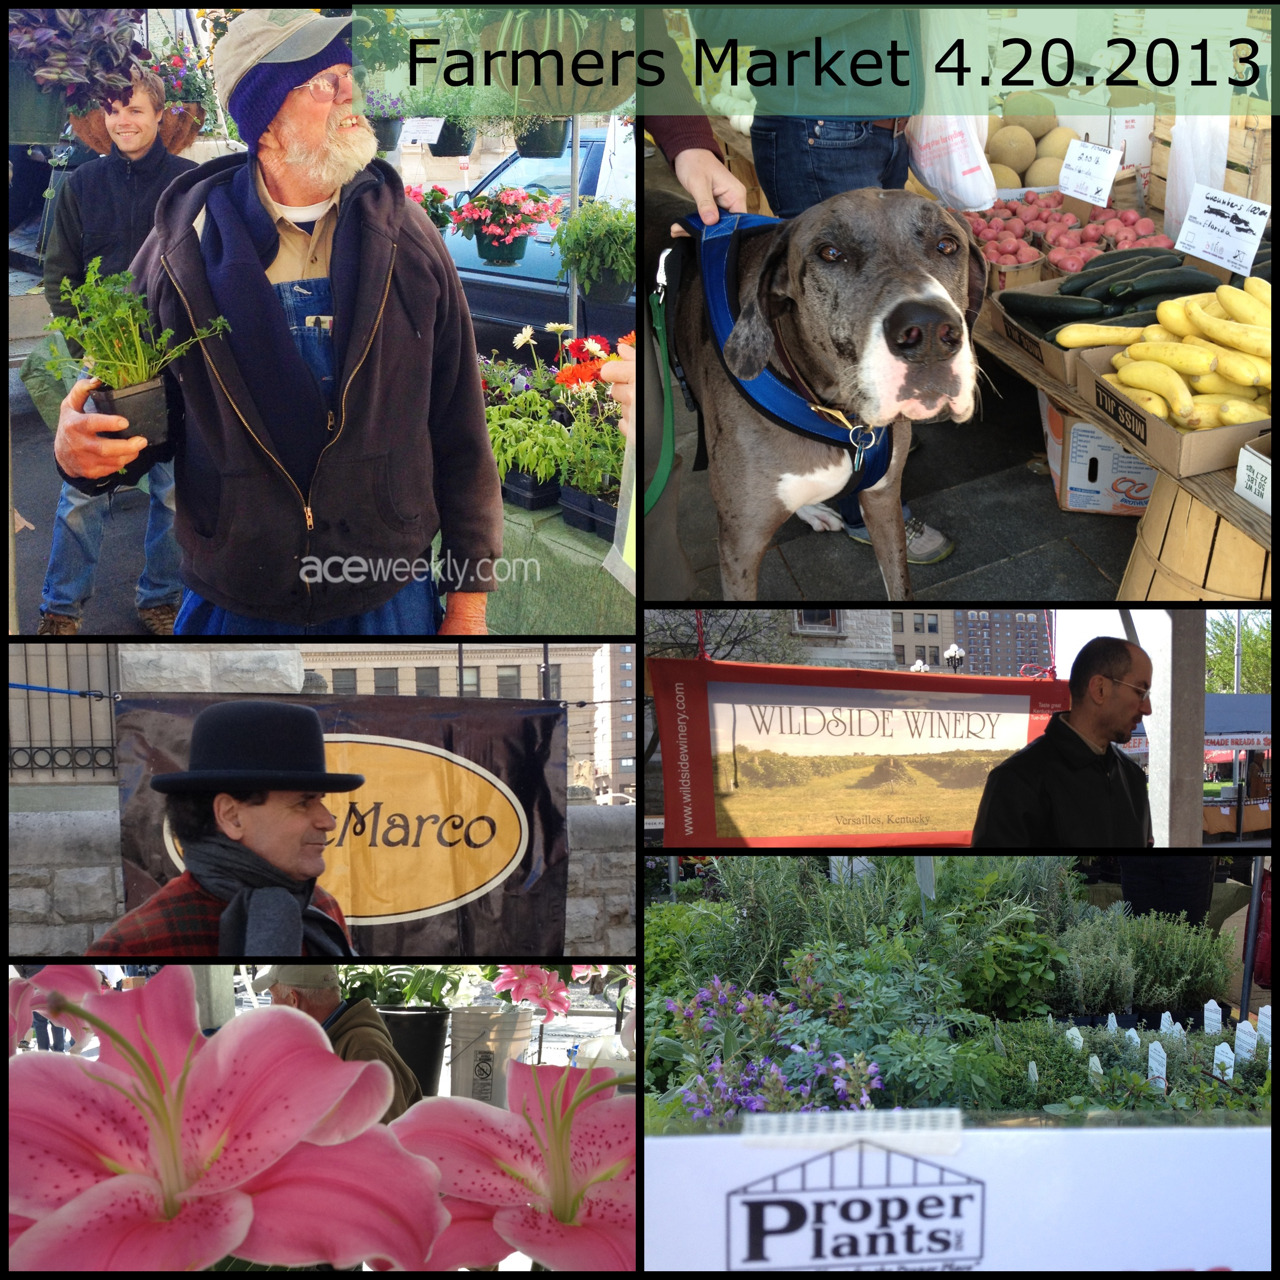 It was a GLORIOUS morning at Farmers' Market. High points: the pink lillies, Jacob's omelets and hot chocolate, and Russell (at Proper Plants) had the cutting celery plants and his famous tomato hanging baskets. (He has the best tomato plants in town.)